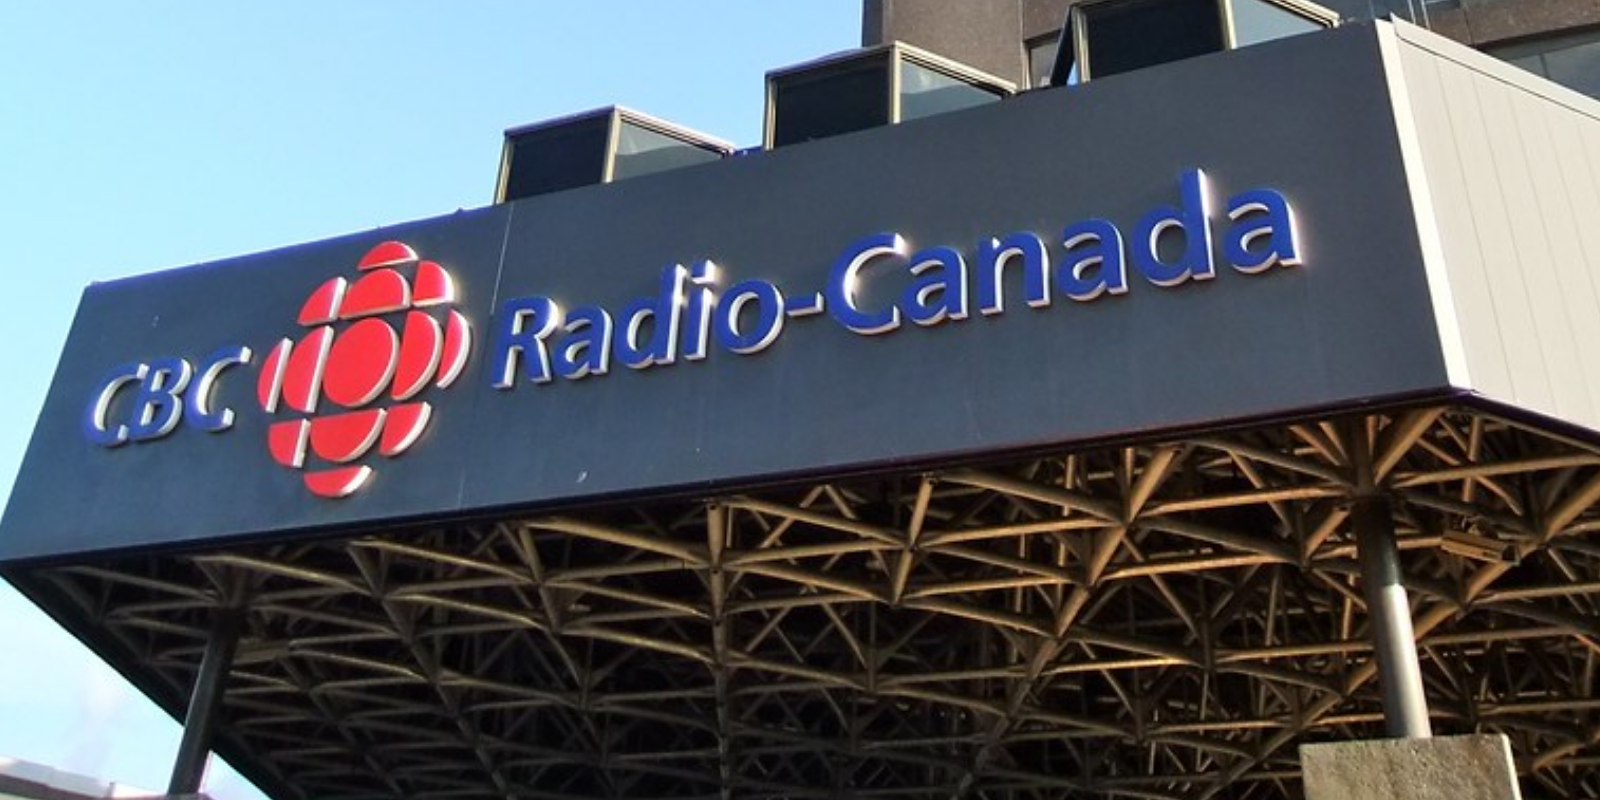 BREAKING: CBC to lay off more than 60 employees including journalists and managerial positions